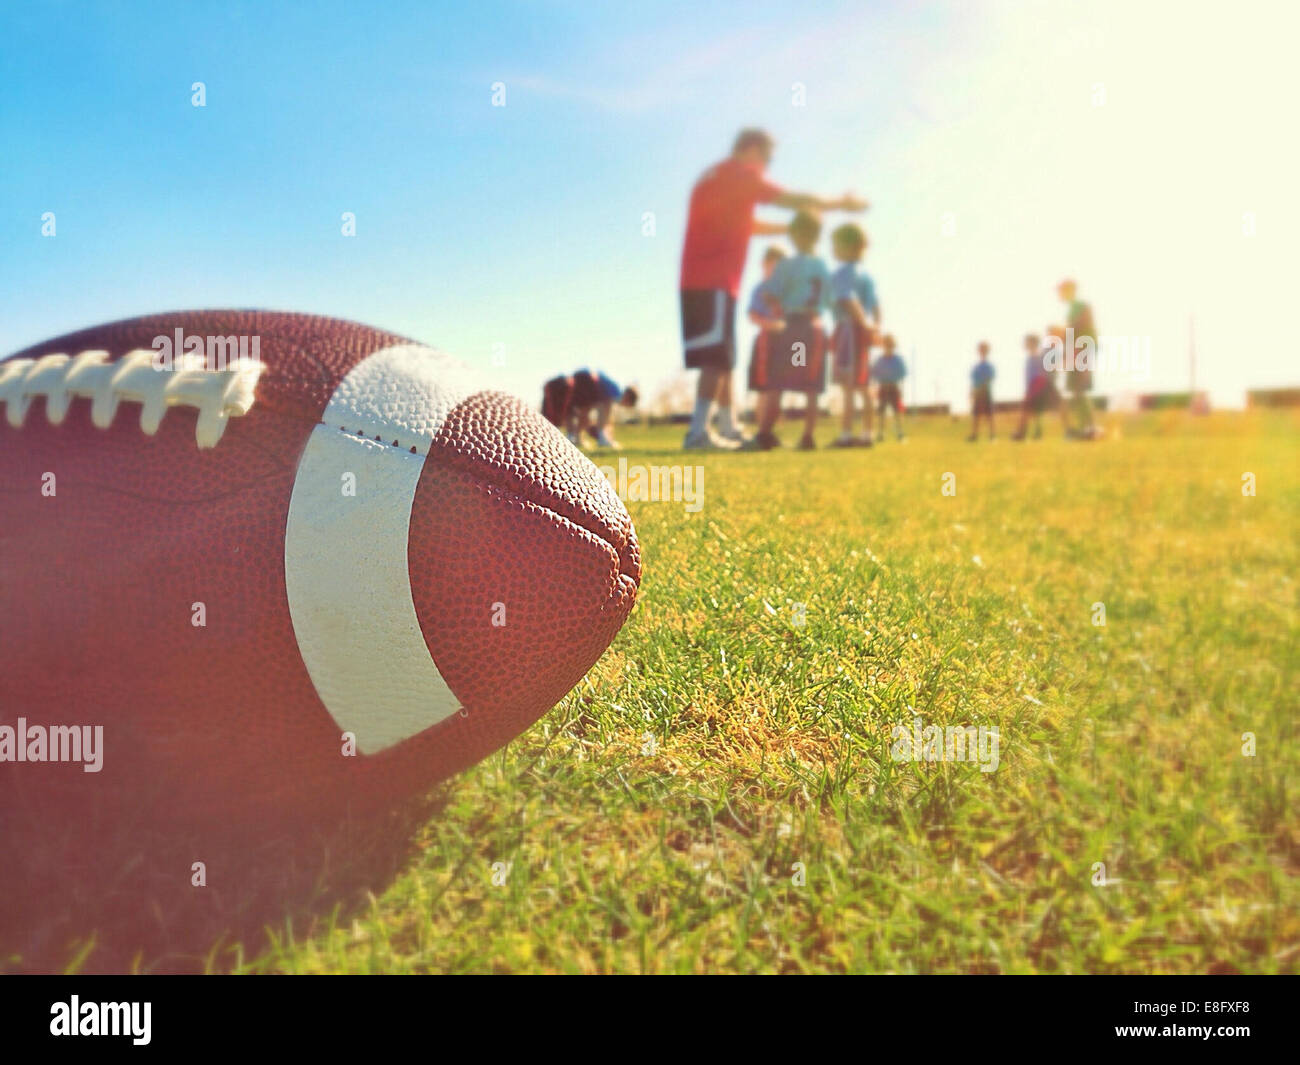 Close up of ball on grass during practice - Stock Image